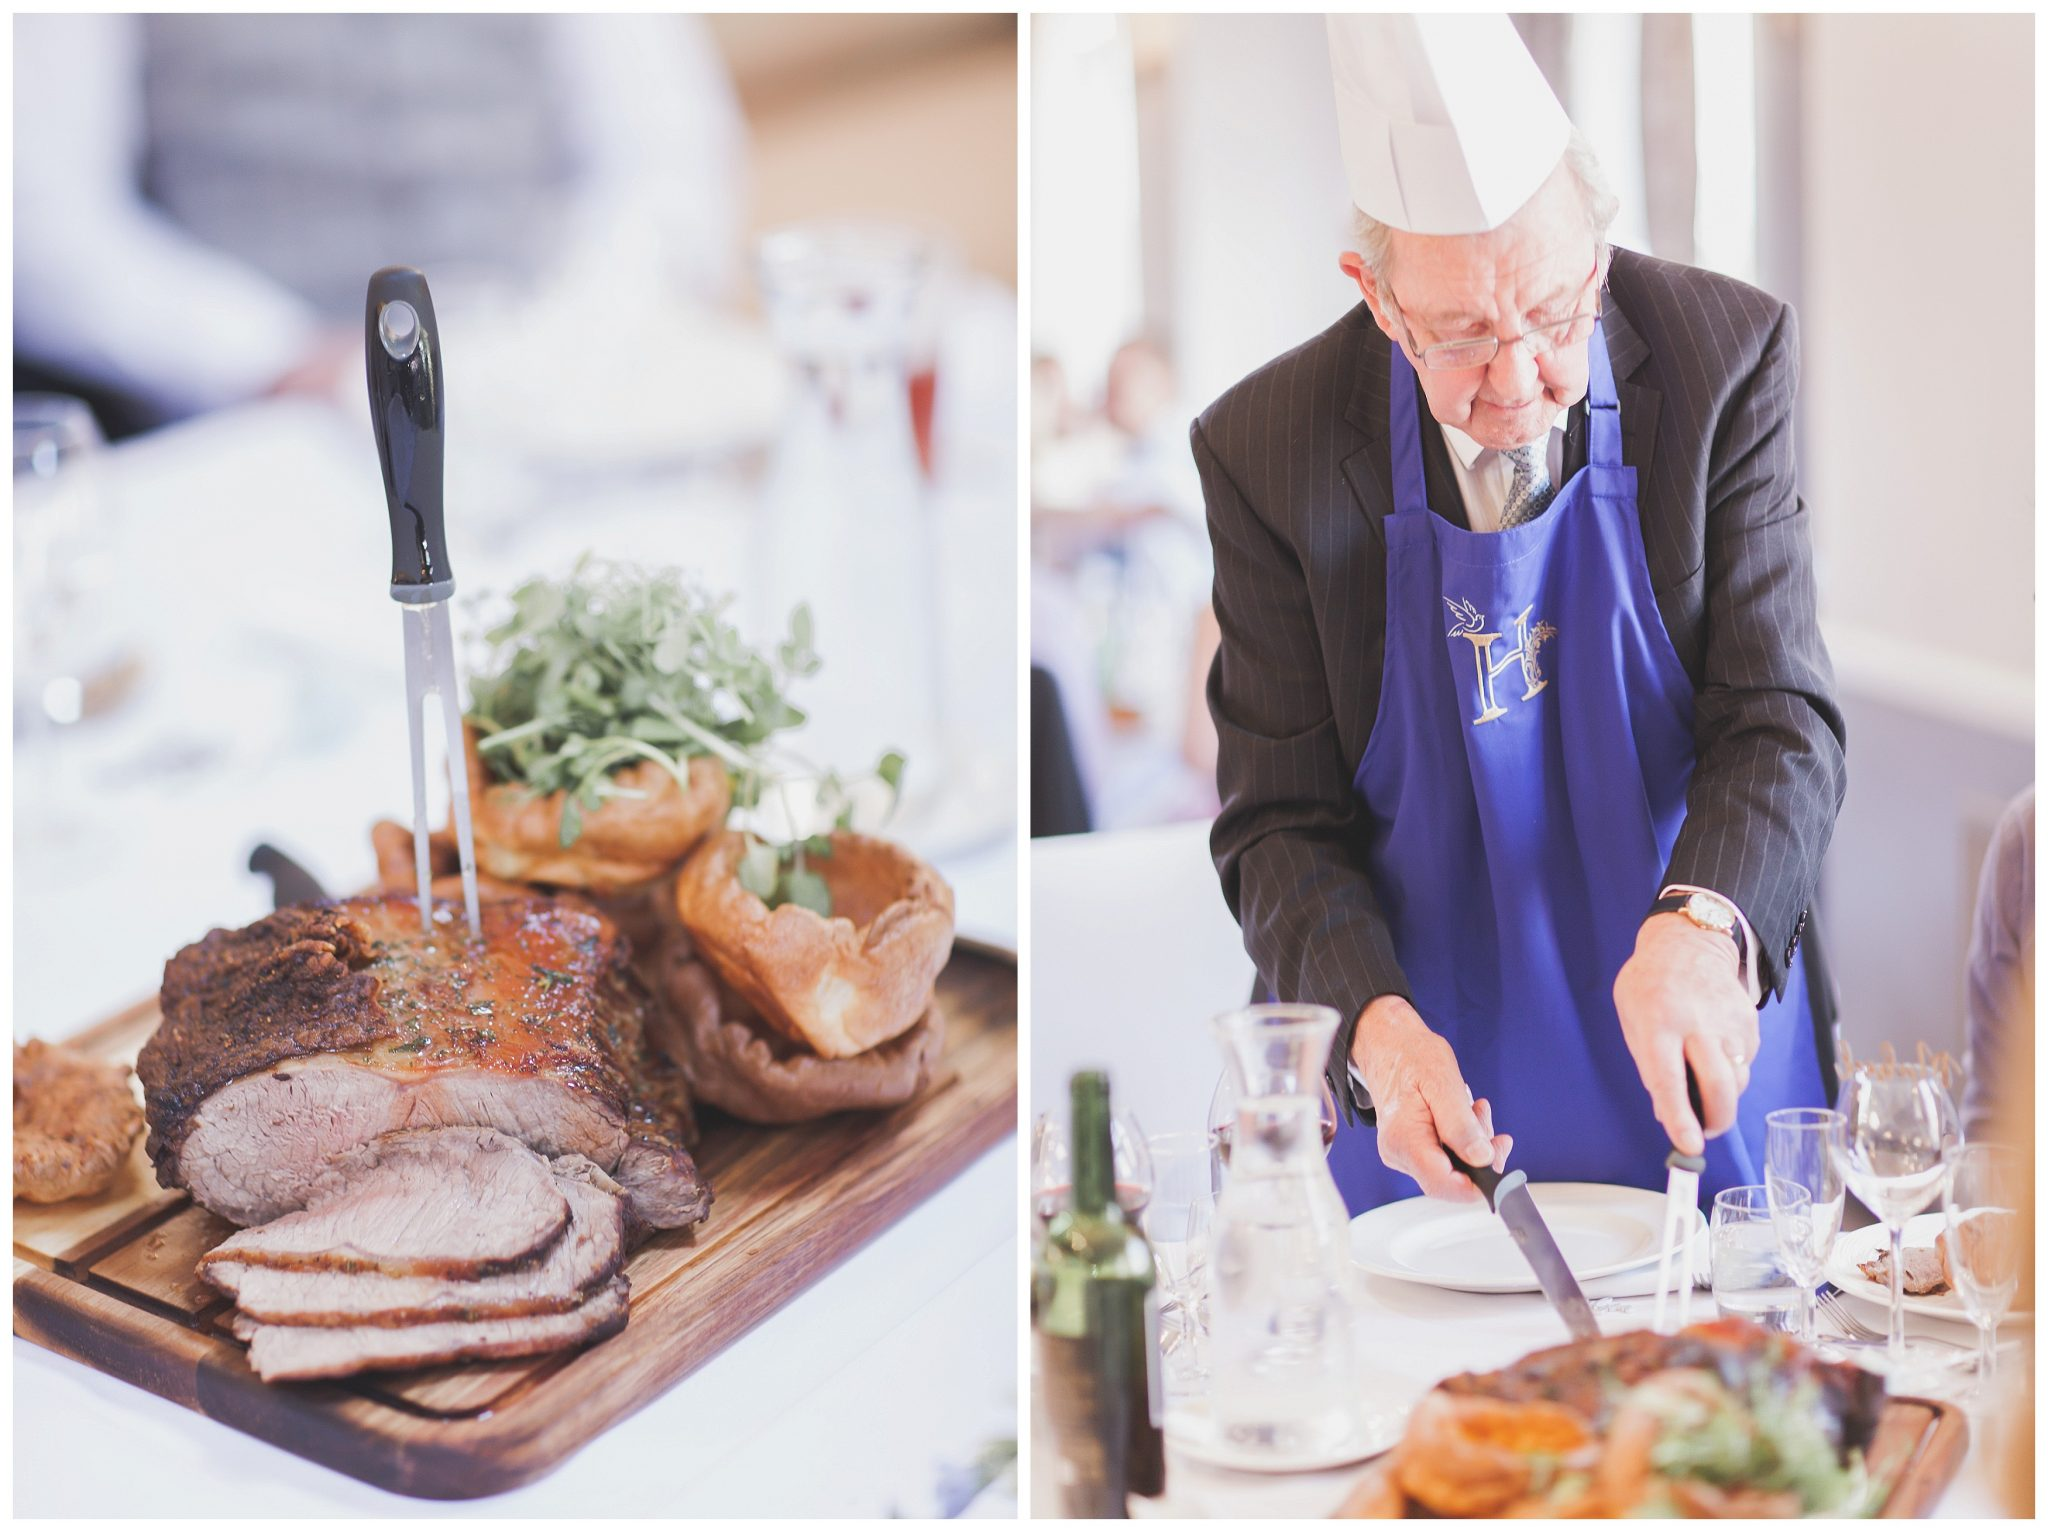 Pictures of the food and granddad curving the meat